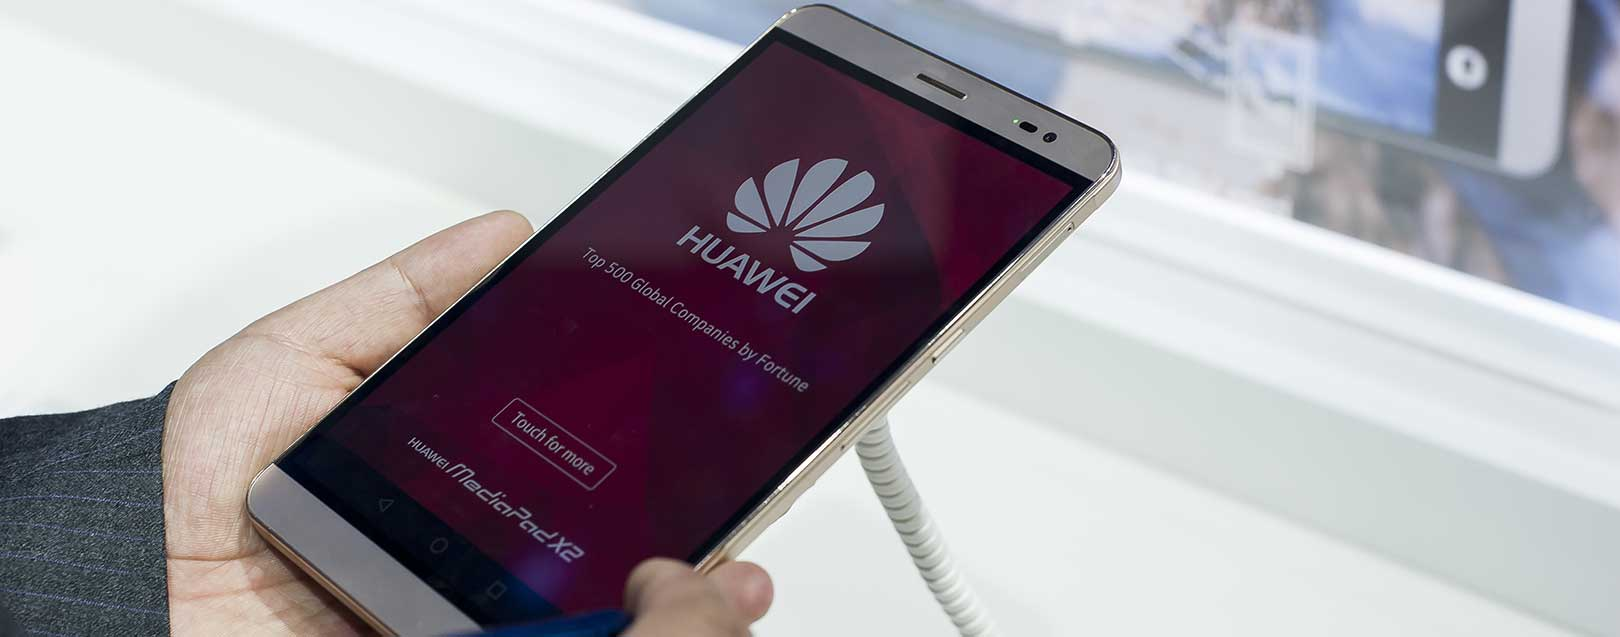 Huawei to commence smartphone production in India next month